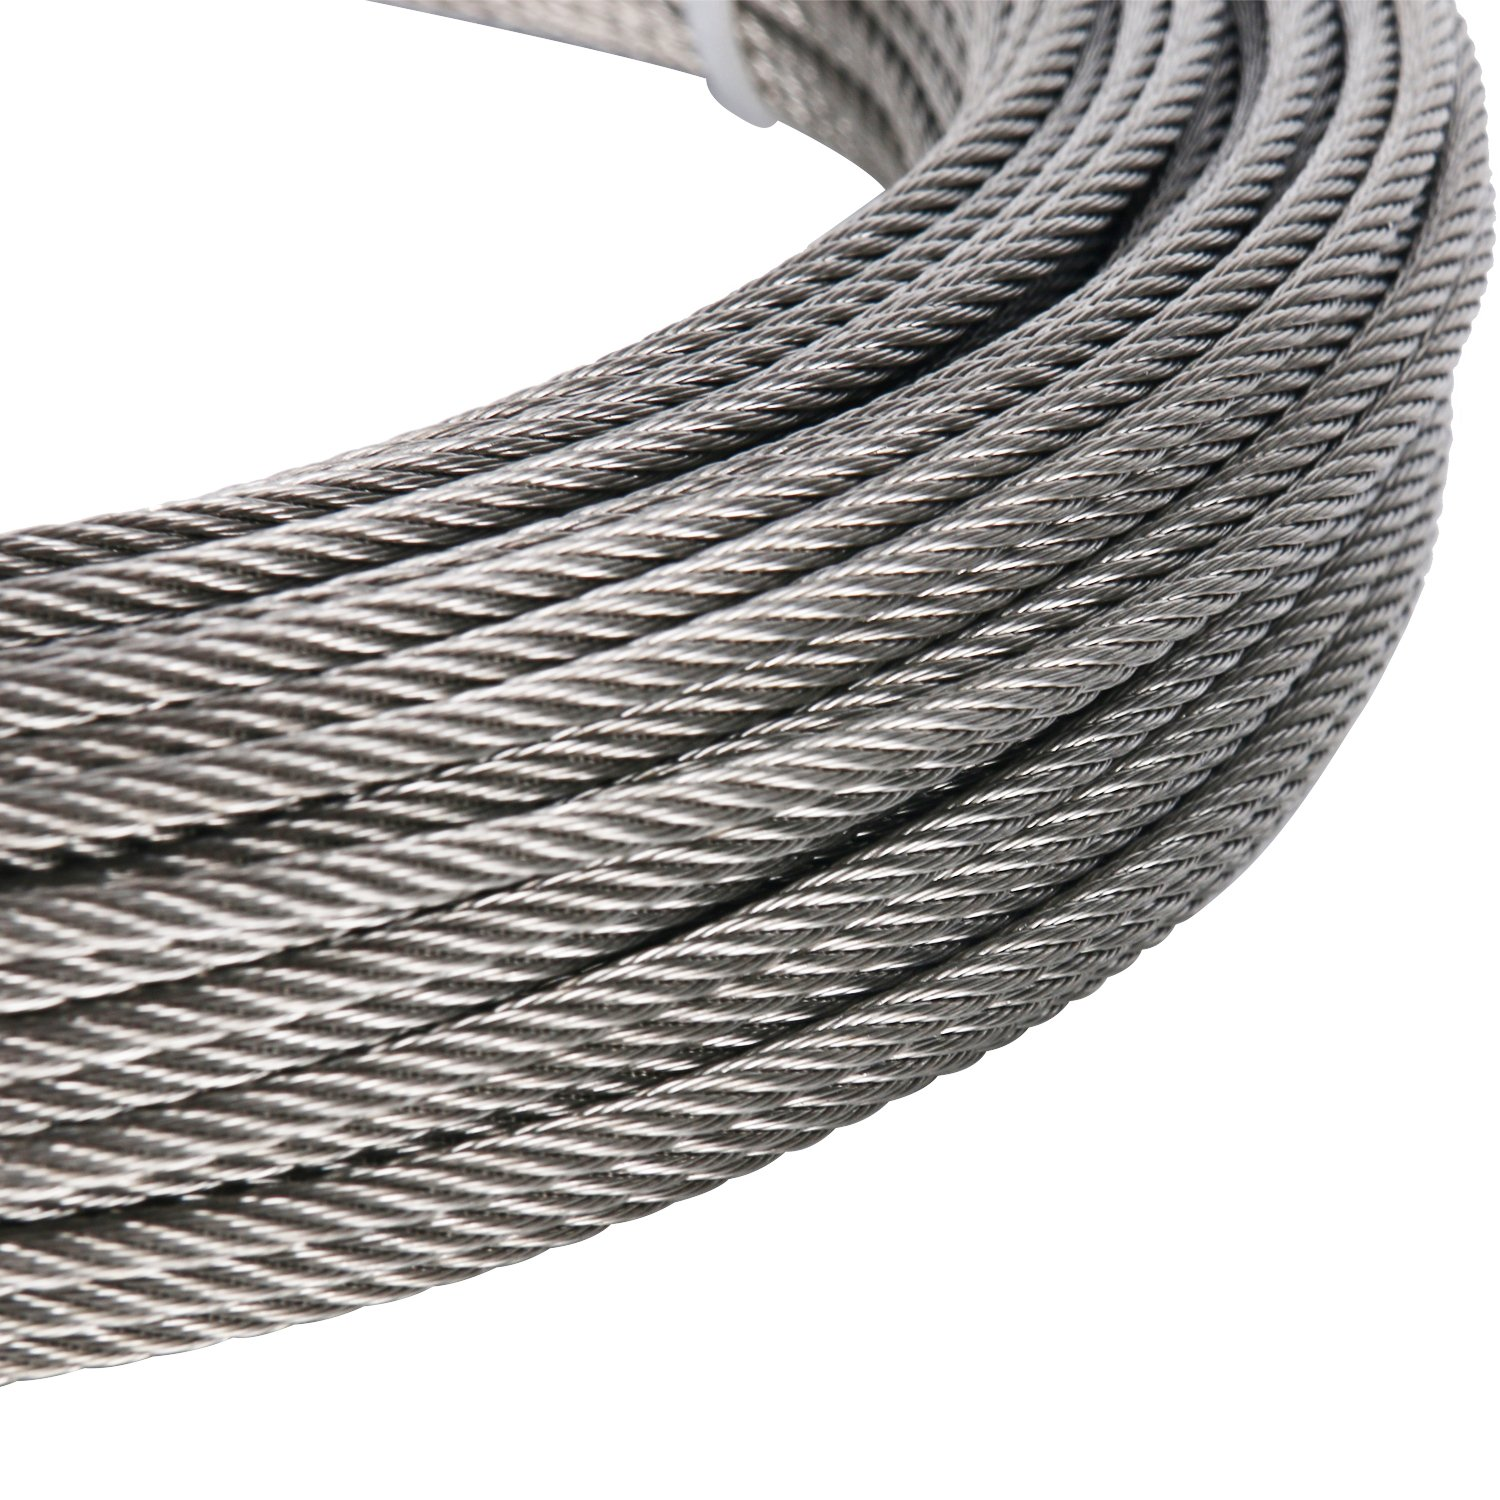 DasMarine Stainless Aircraft Steel Wire Rope Cable for Railing,Decking, DIY Balustrade, 1/8Inch,7x7,164Feet by DasMarine (Image #6)